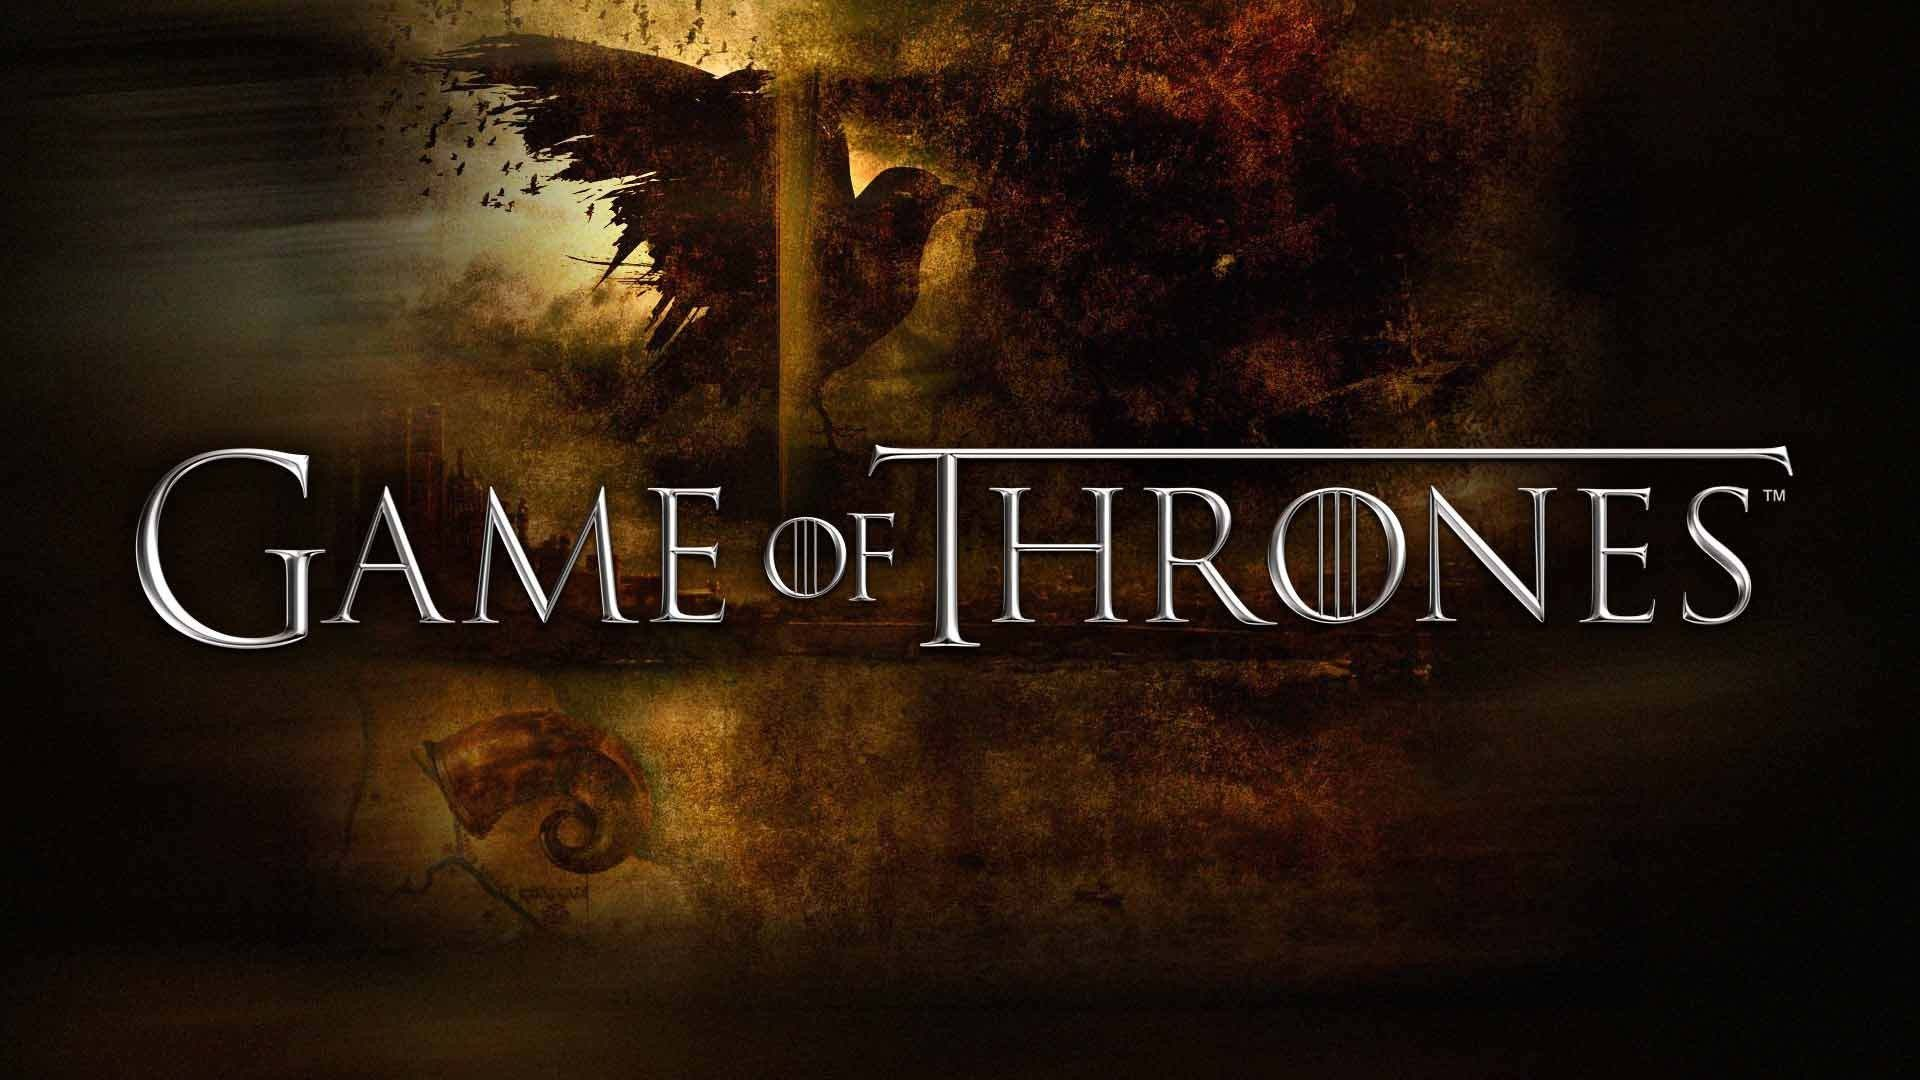 1920x1080 Game Of Thrones Wallpapers Collection For Free